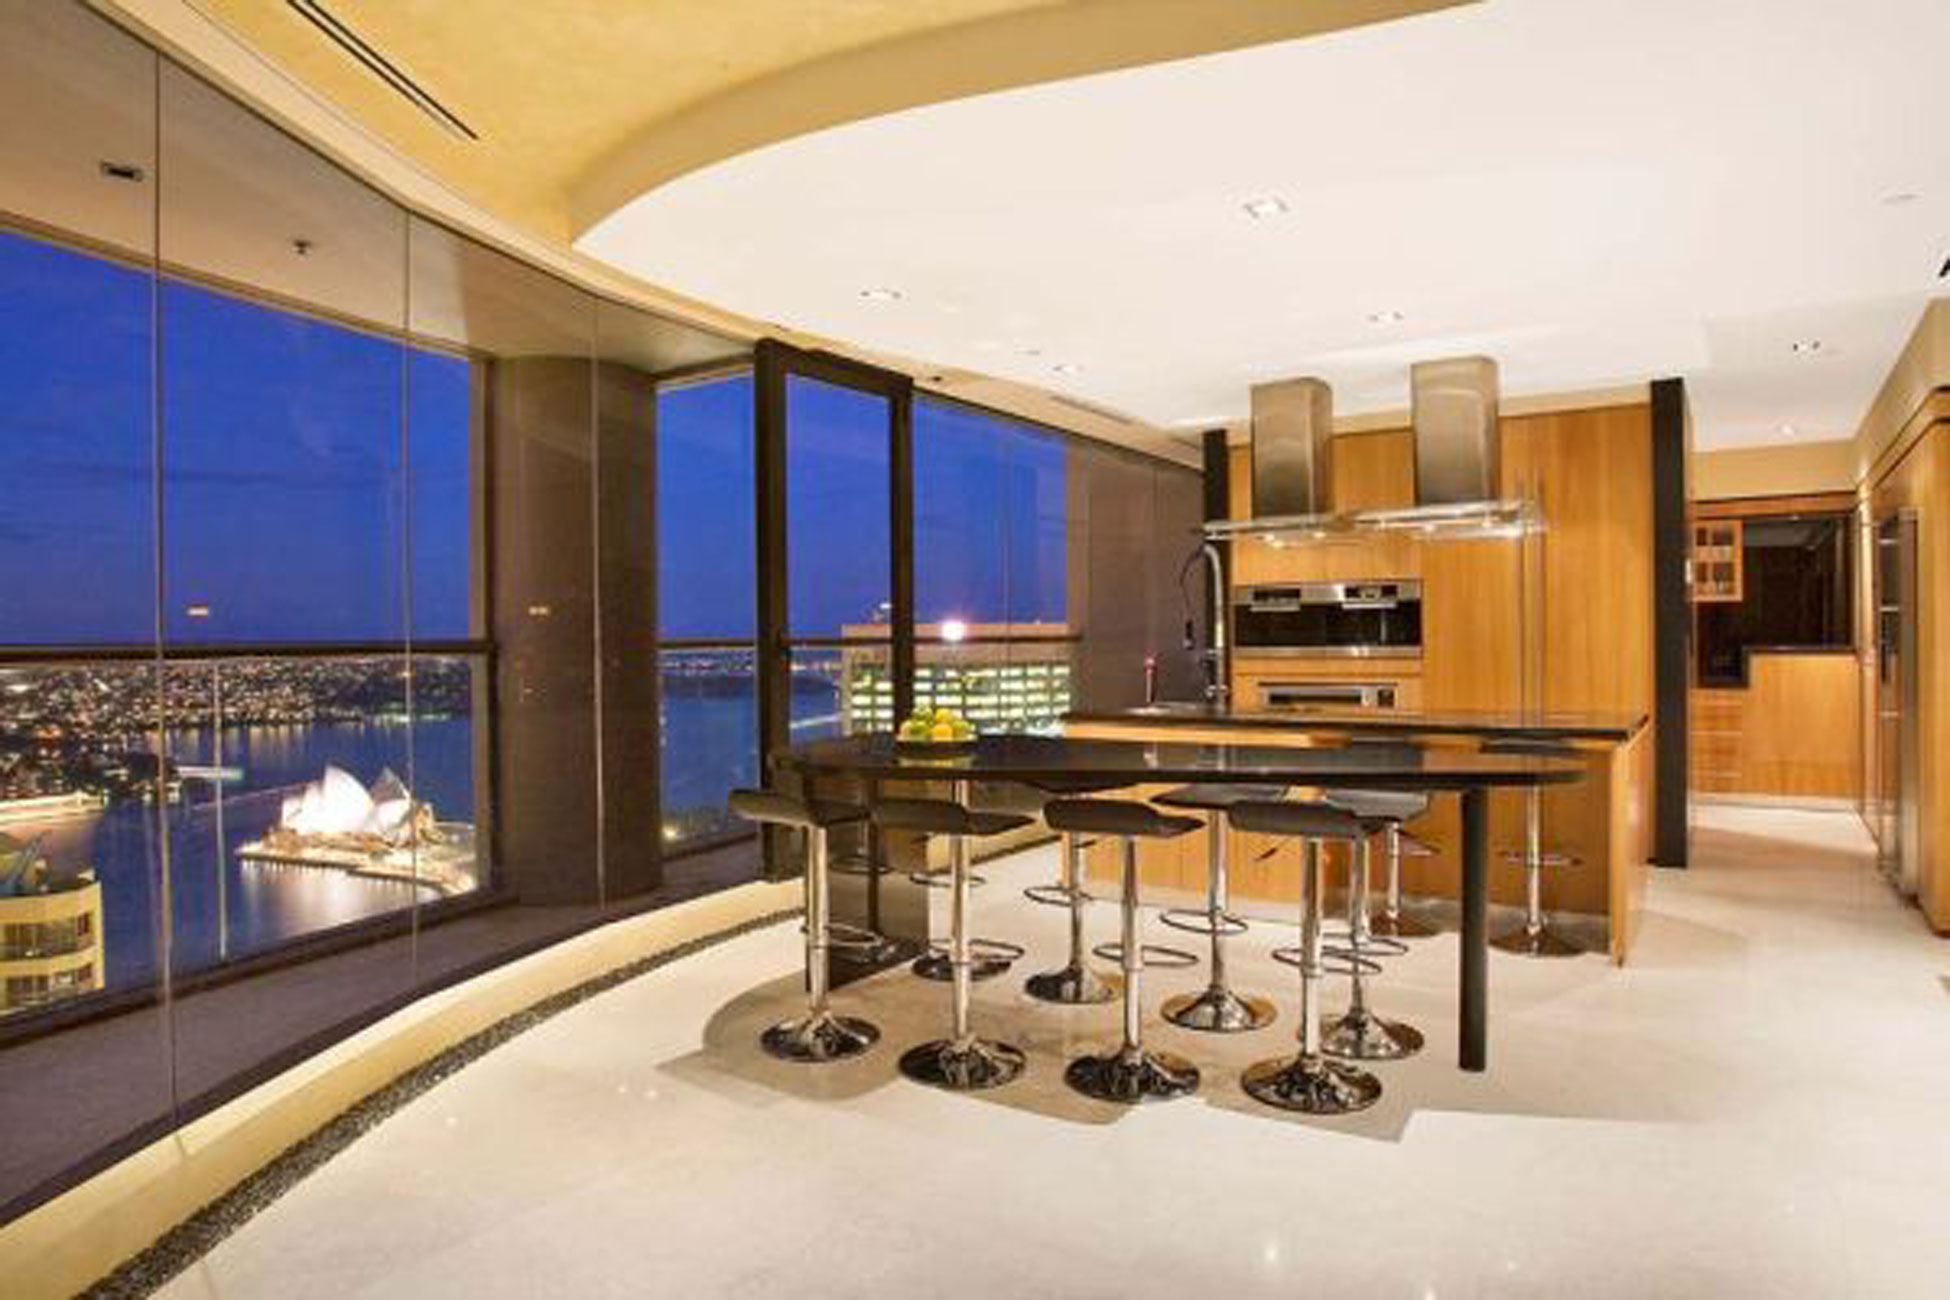 Sydney Fabulous Penthouse, Luxury Interior Ideas - Kitchen » Viahouse.